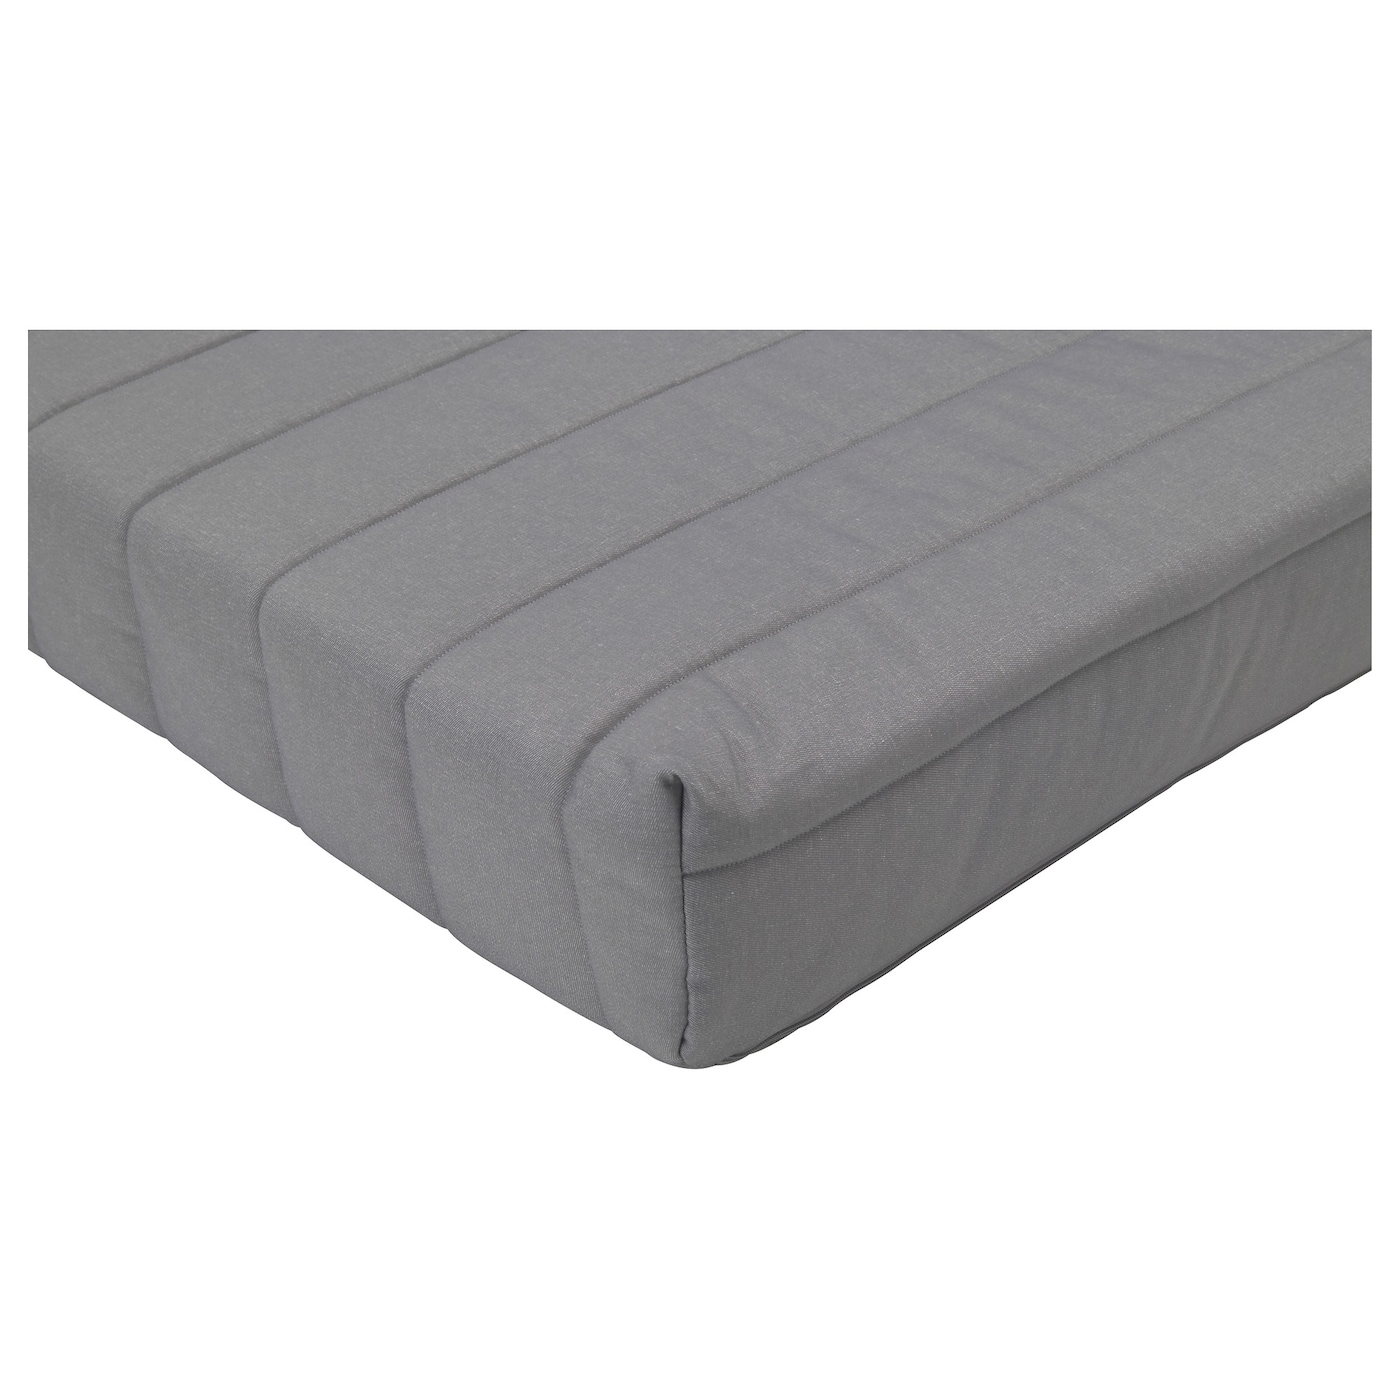 mattress sofa bed for sprung info size queen air ikea superblackbird replacement